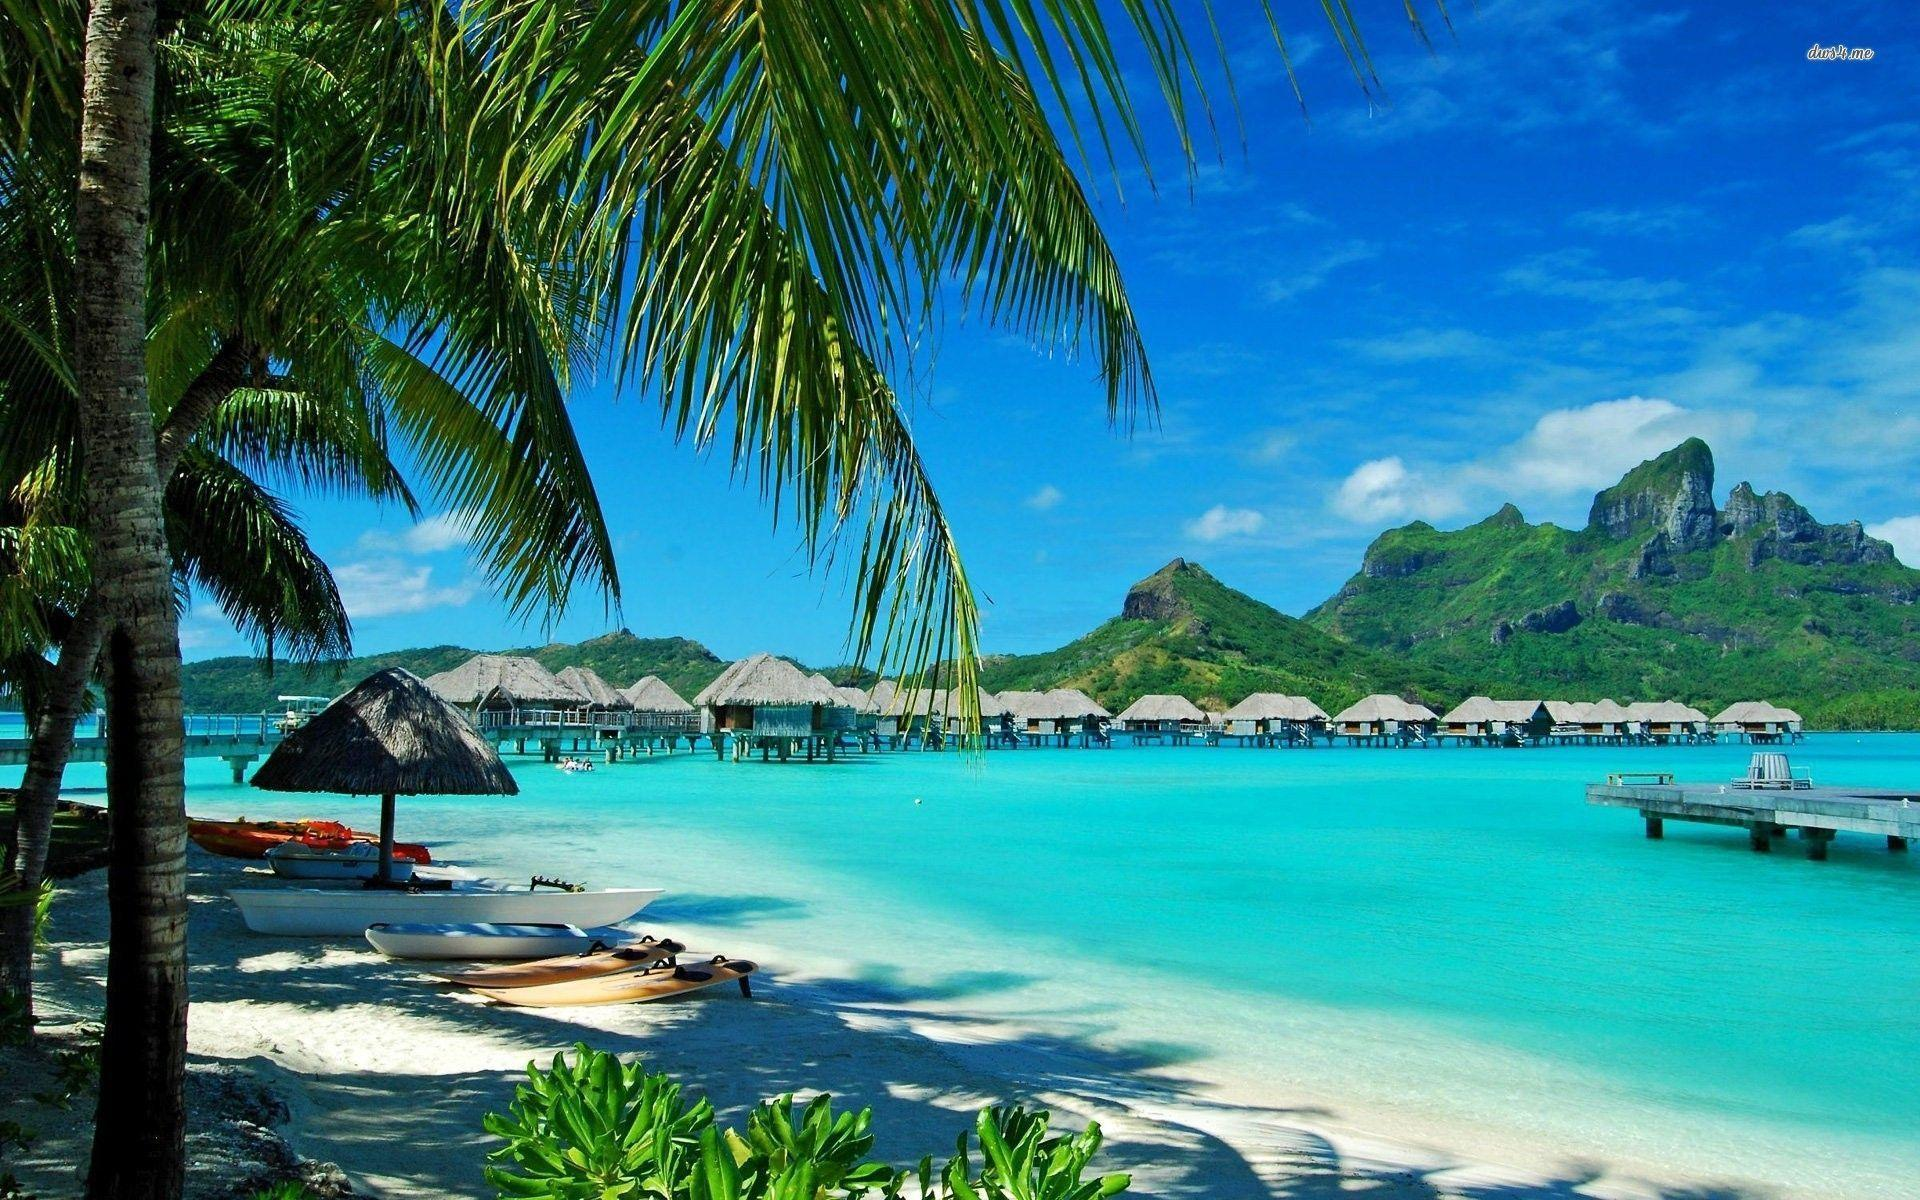 Hawaiian bungalows wallpaper - Beach wallpapers - #